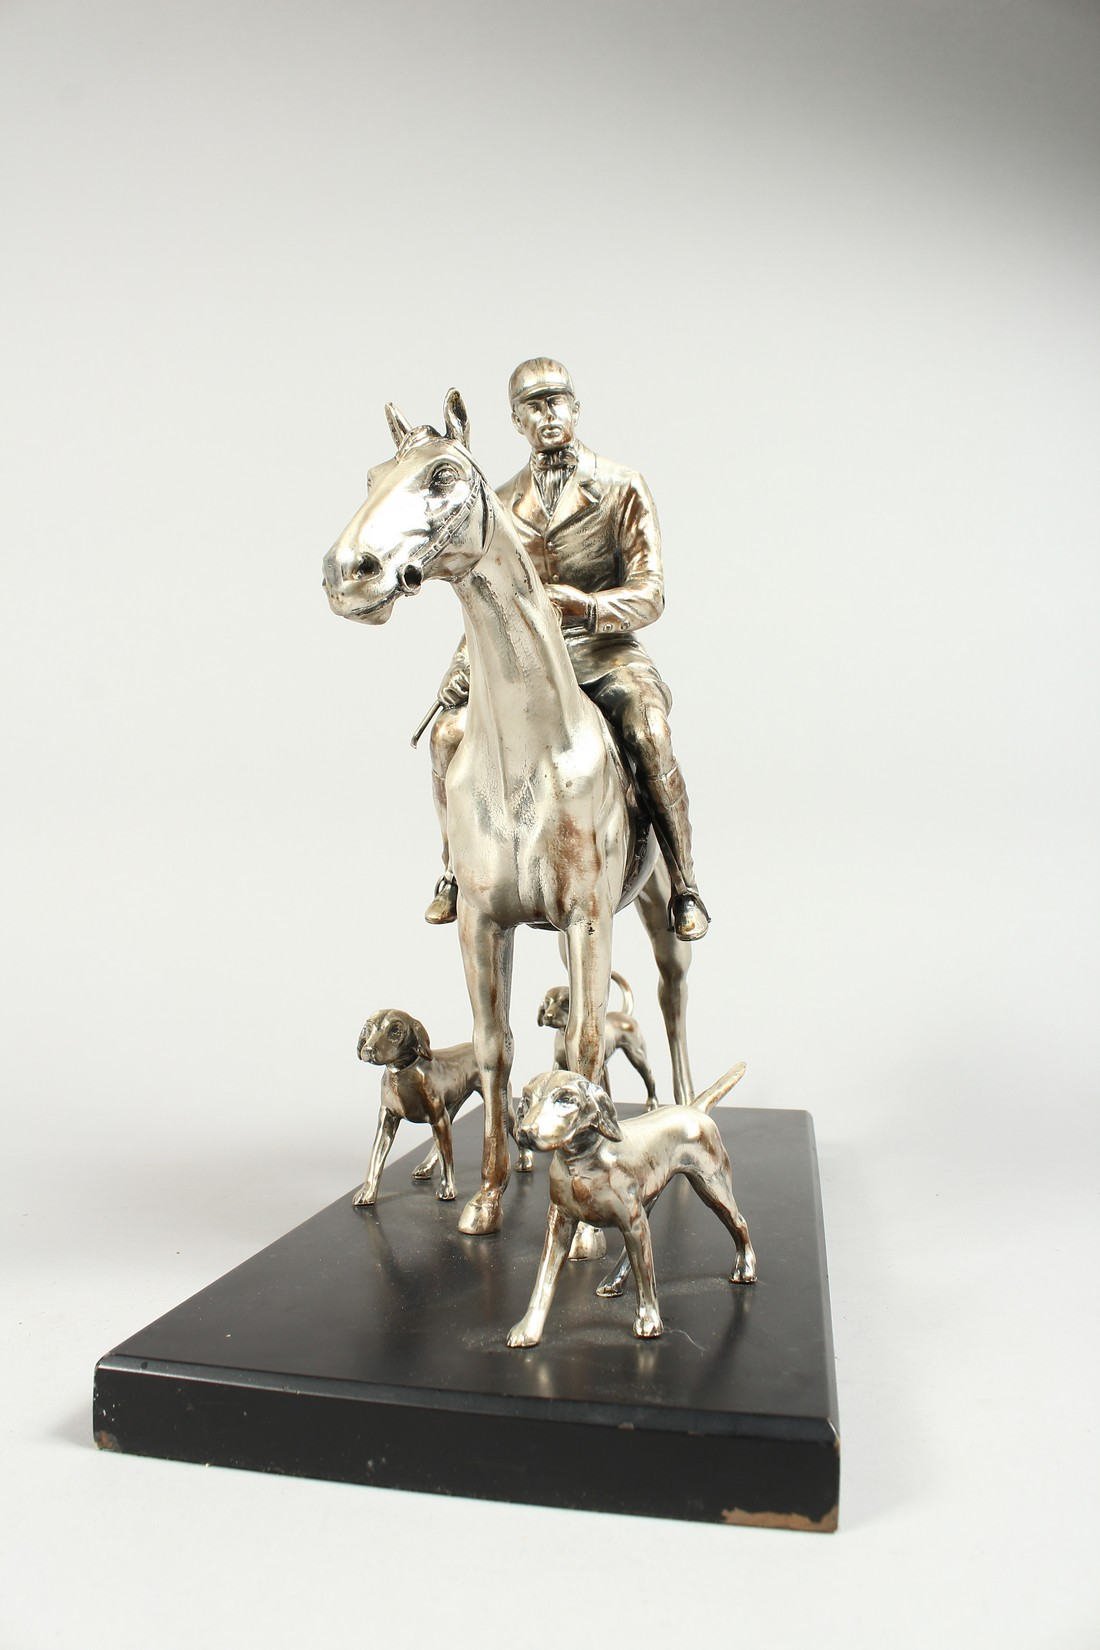 A SILVERED BRONZE GROUP HORSE AND RIDER, with their dogs, on a wooden base. 17ins long, 12ins high. - Image 3 of 10